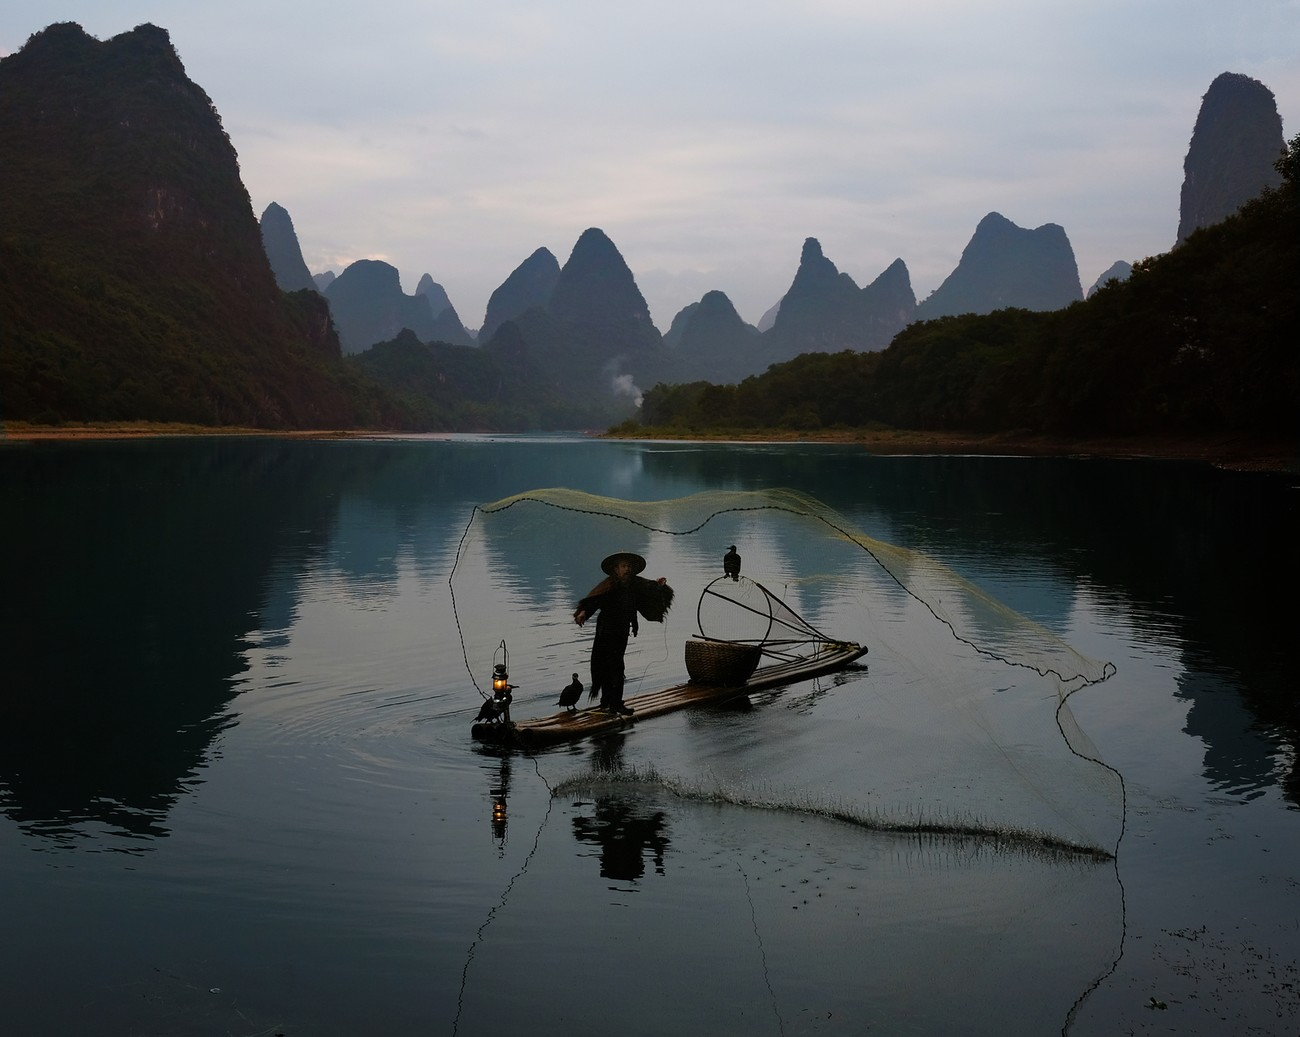 Cormorant fisherman throwing his net into Li river